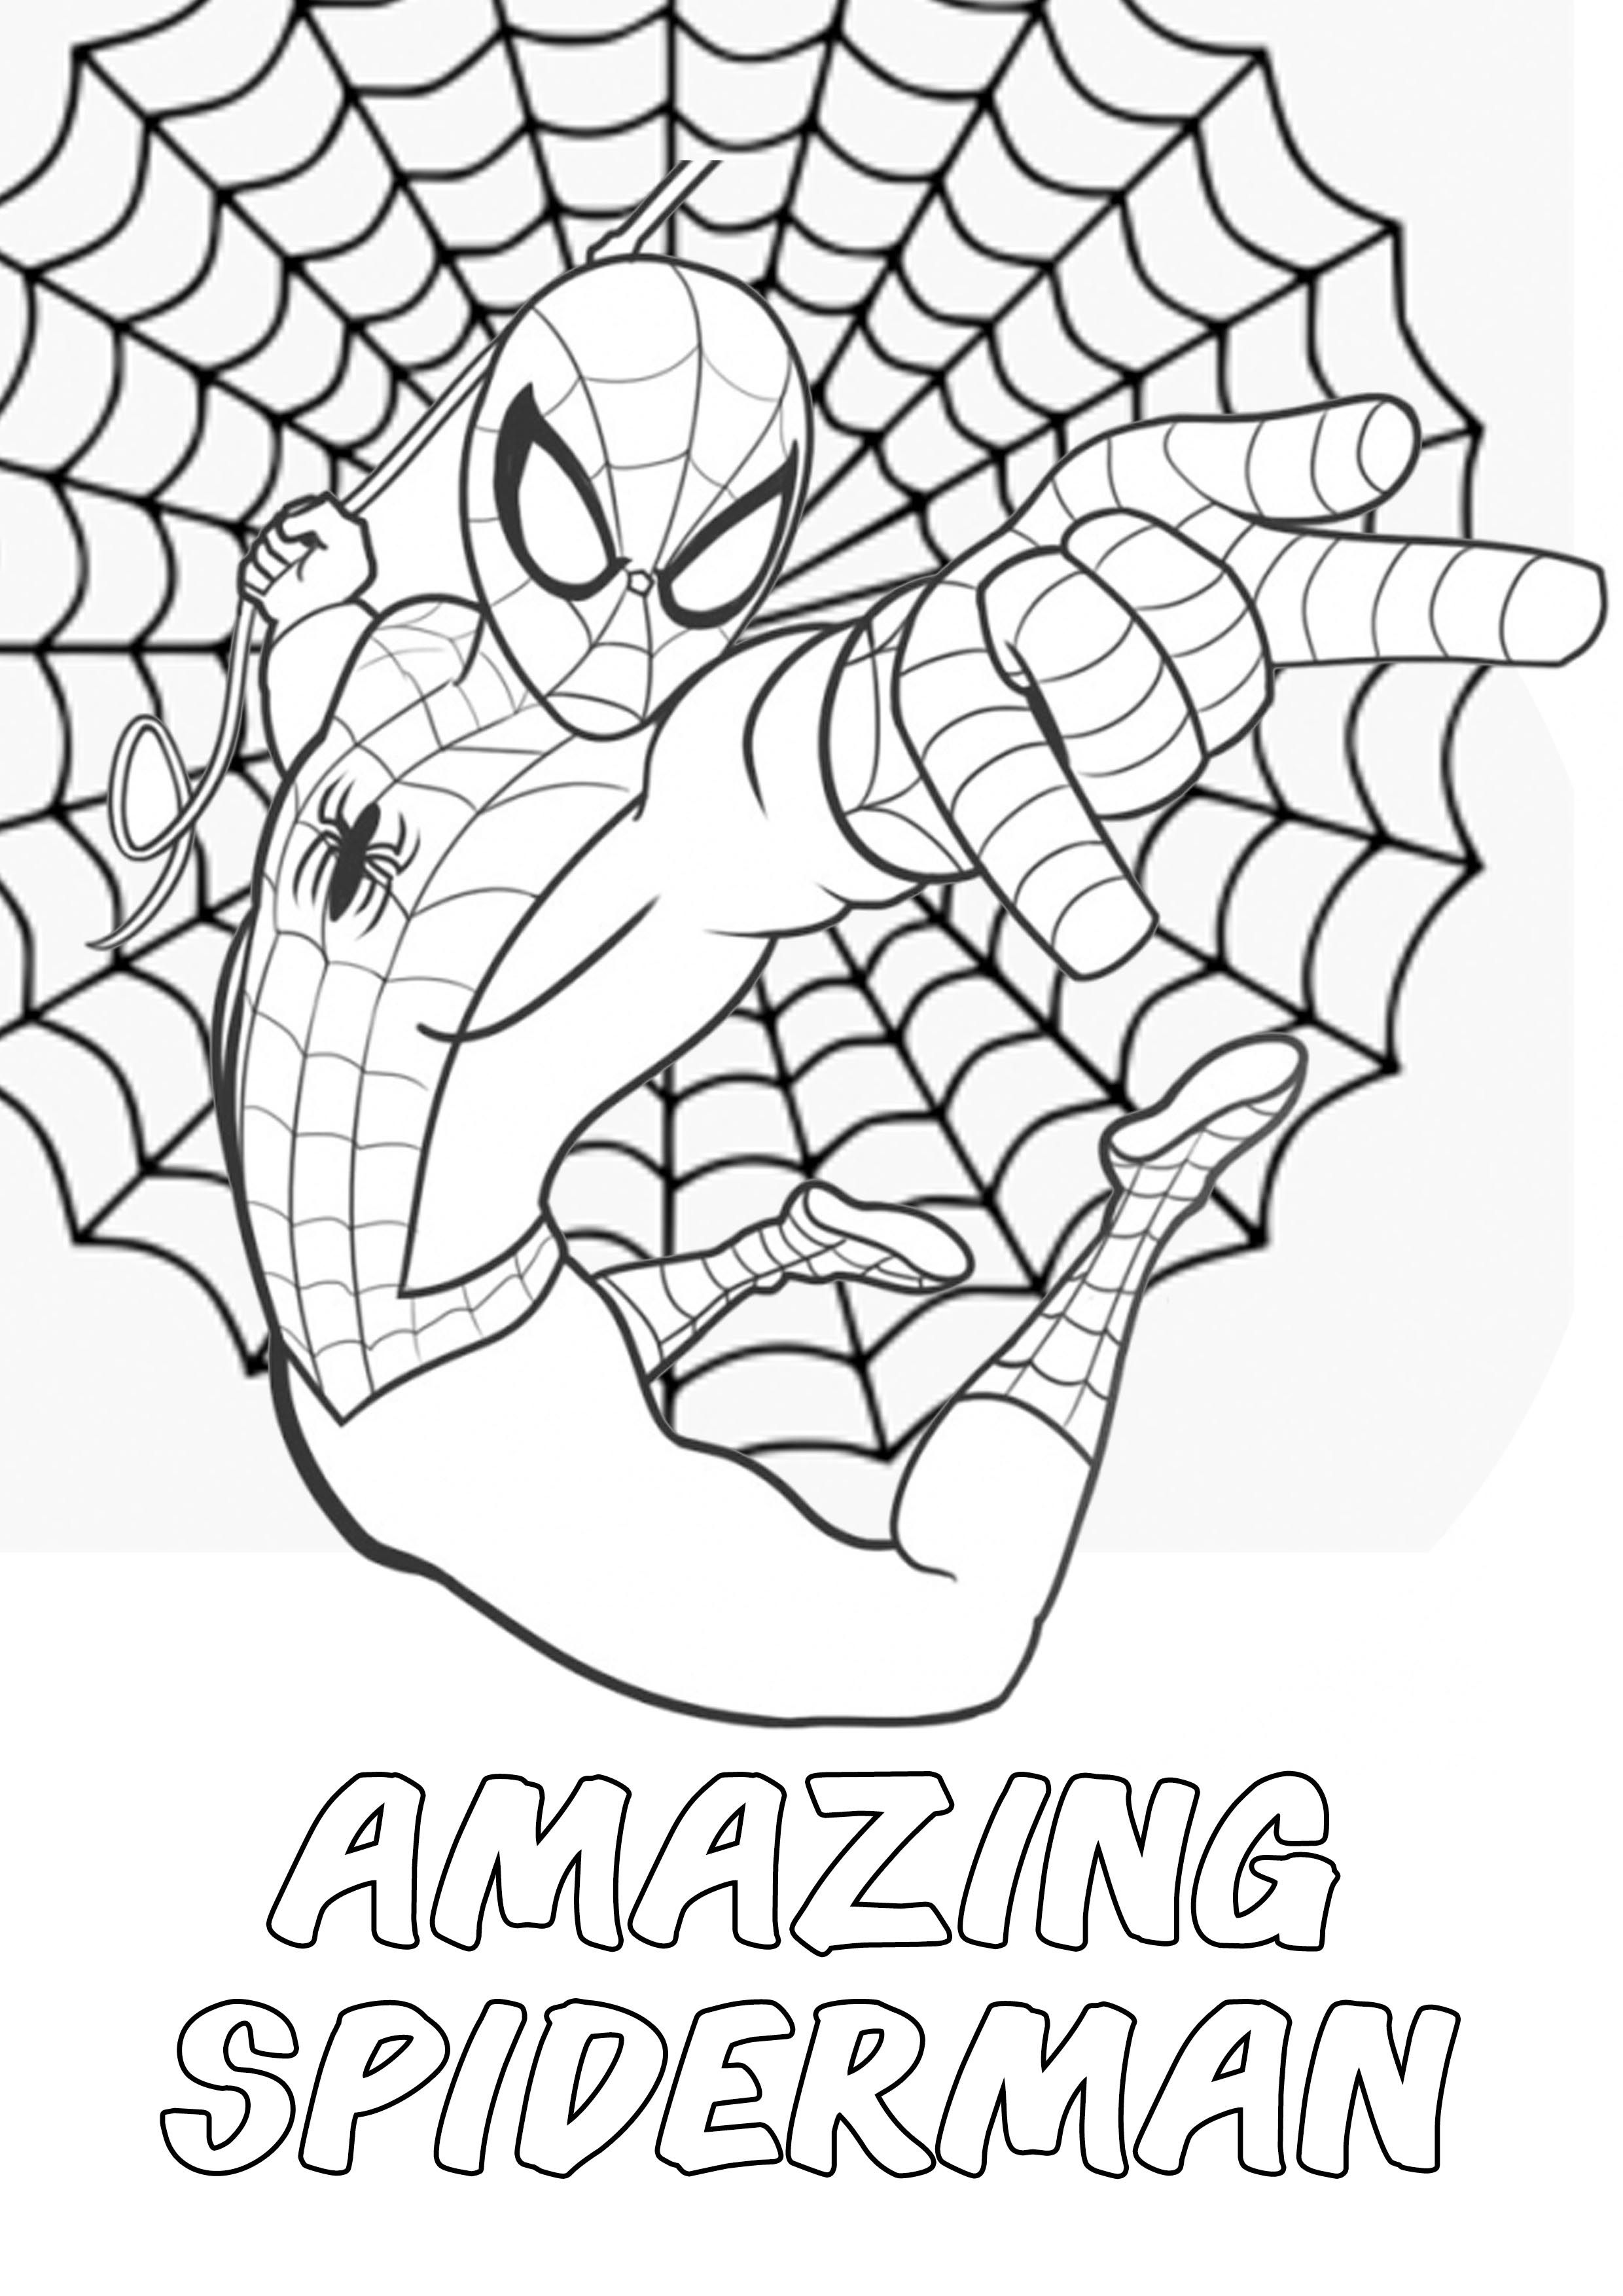 The Amazing Spiderman Action Movies Marvel Coloring Pages Marvel Coloring Coloring Pages Drawings For Him